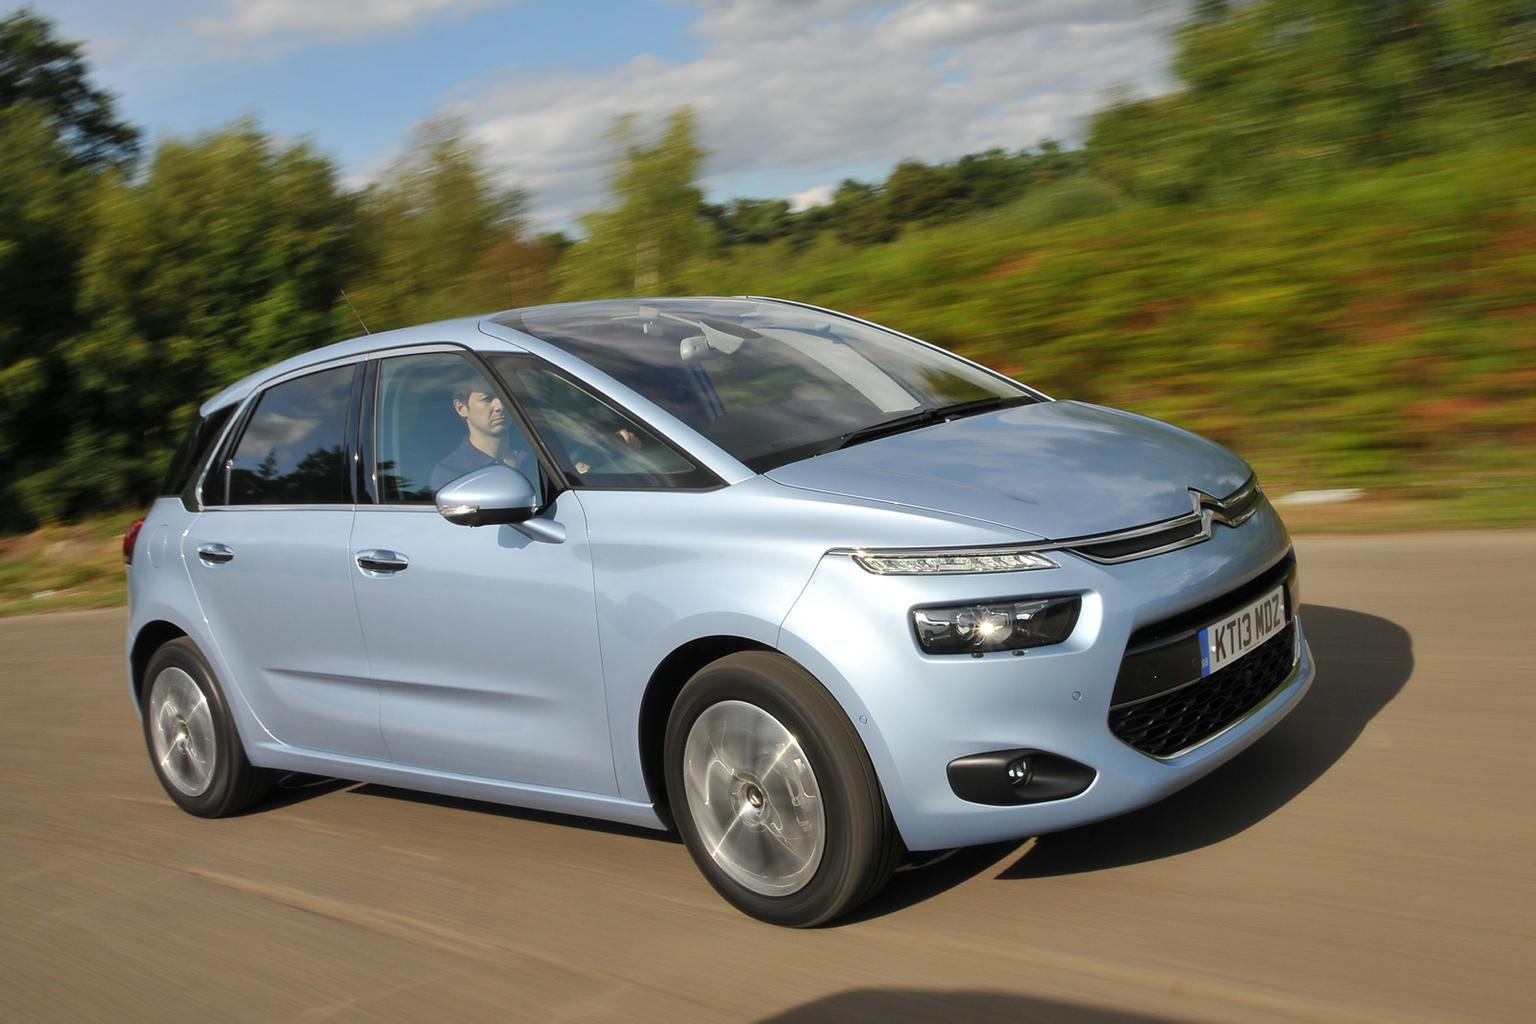 Deal of the day: Citroen C4 Picasso